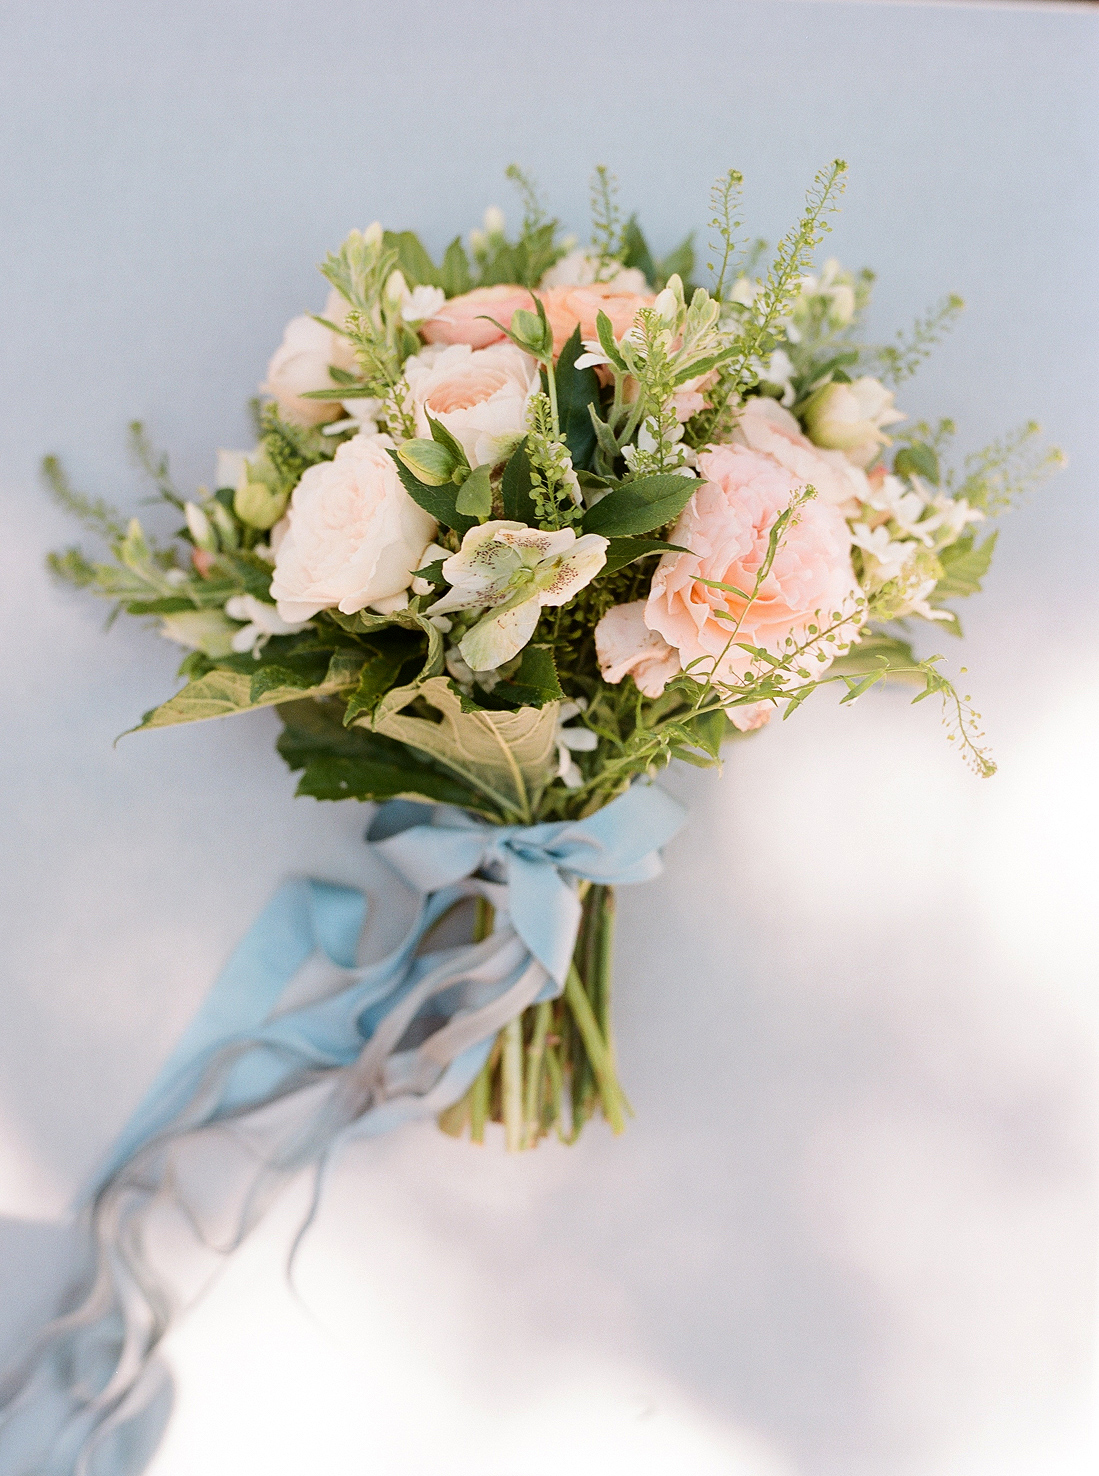 Natalie and Grant wedding bridal bouquet with ranunculus, roses and freesia